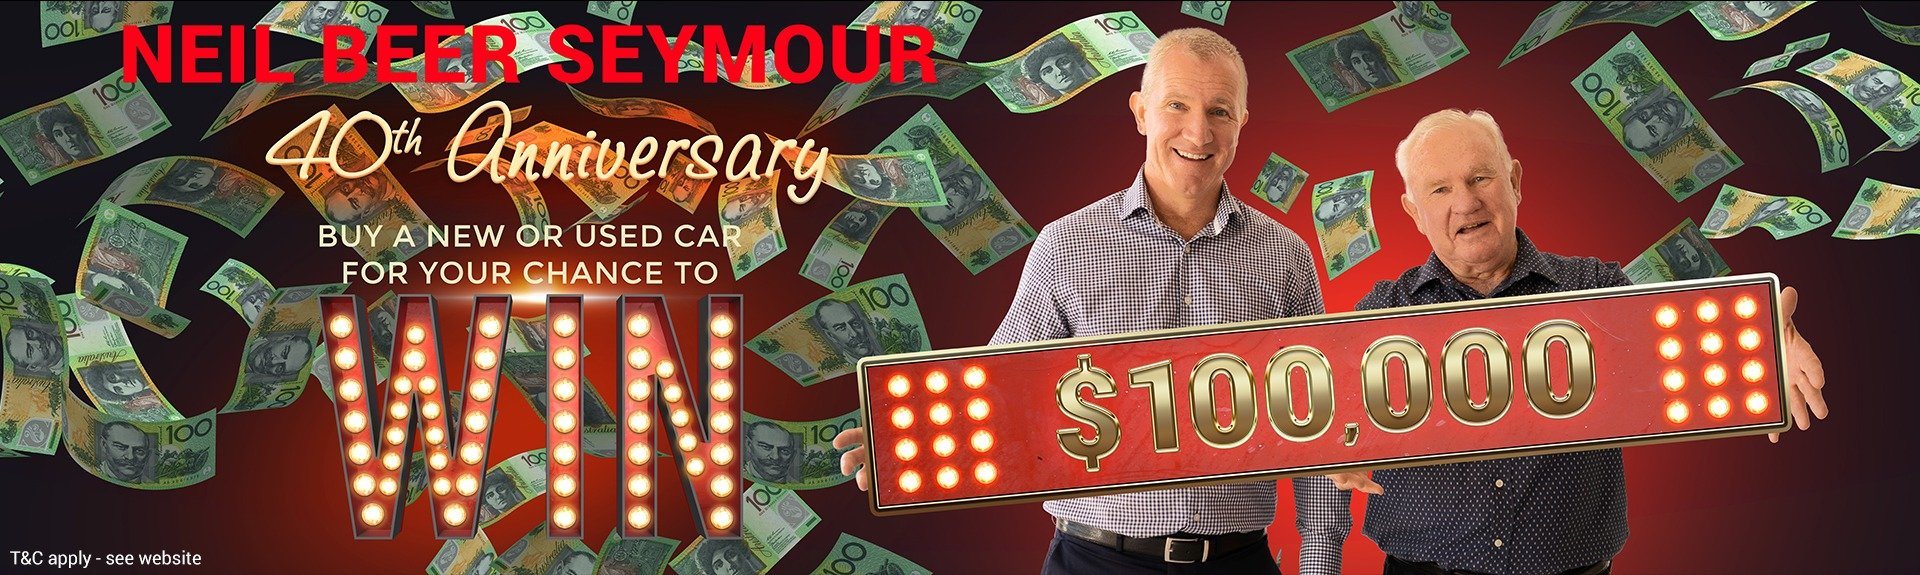 Neil Beer Seymour 40th Anniversary $100,0000 Giveaway